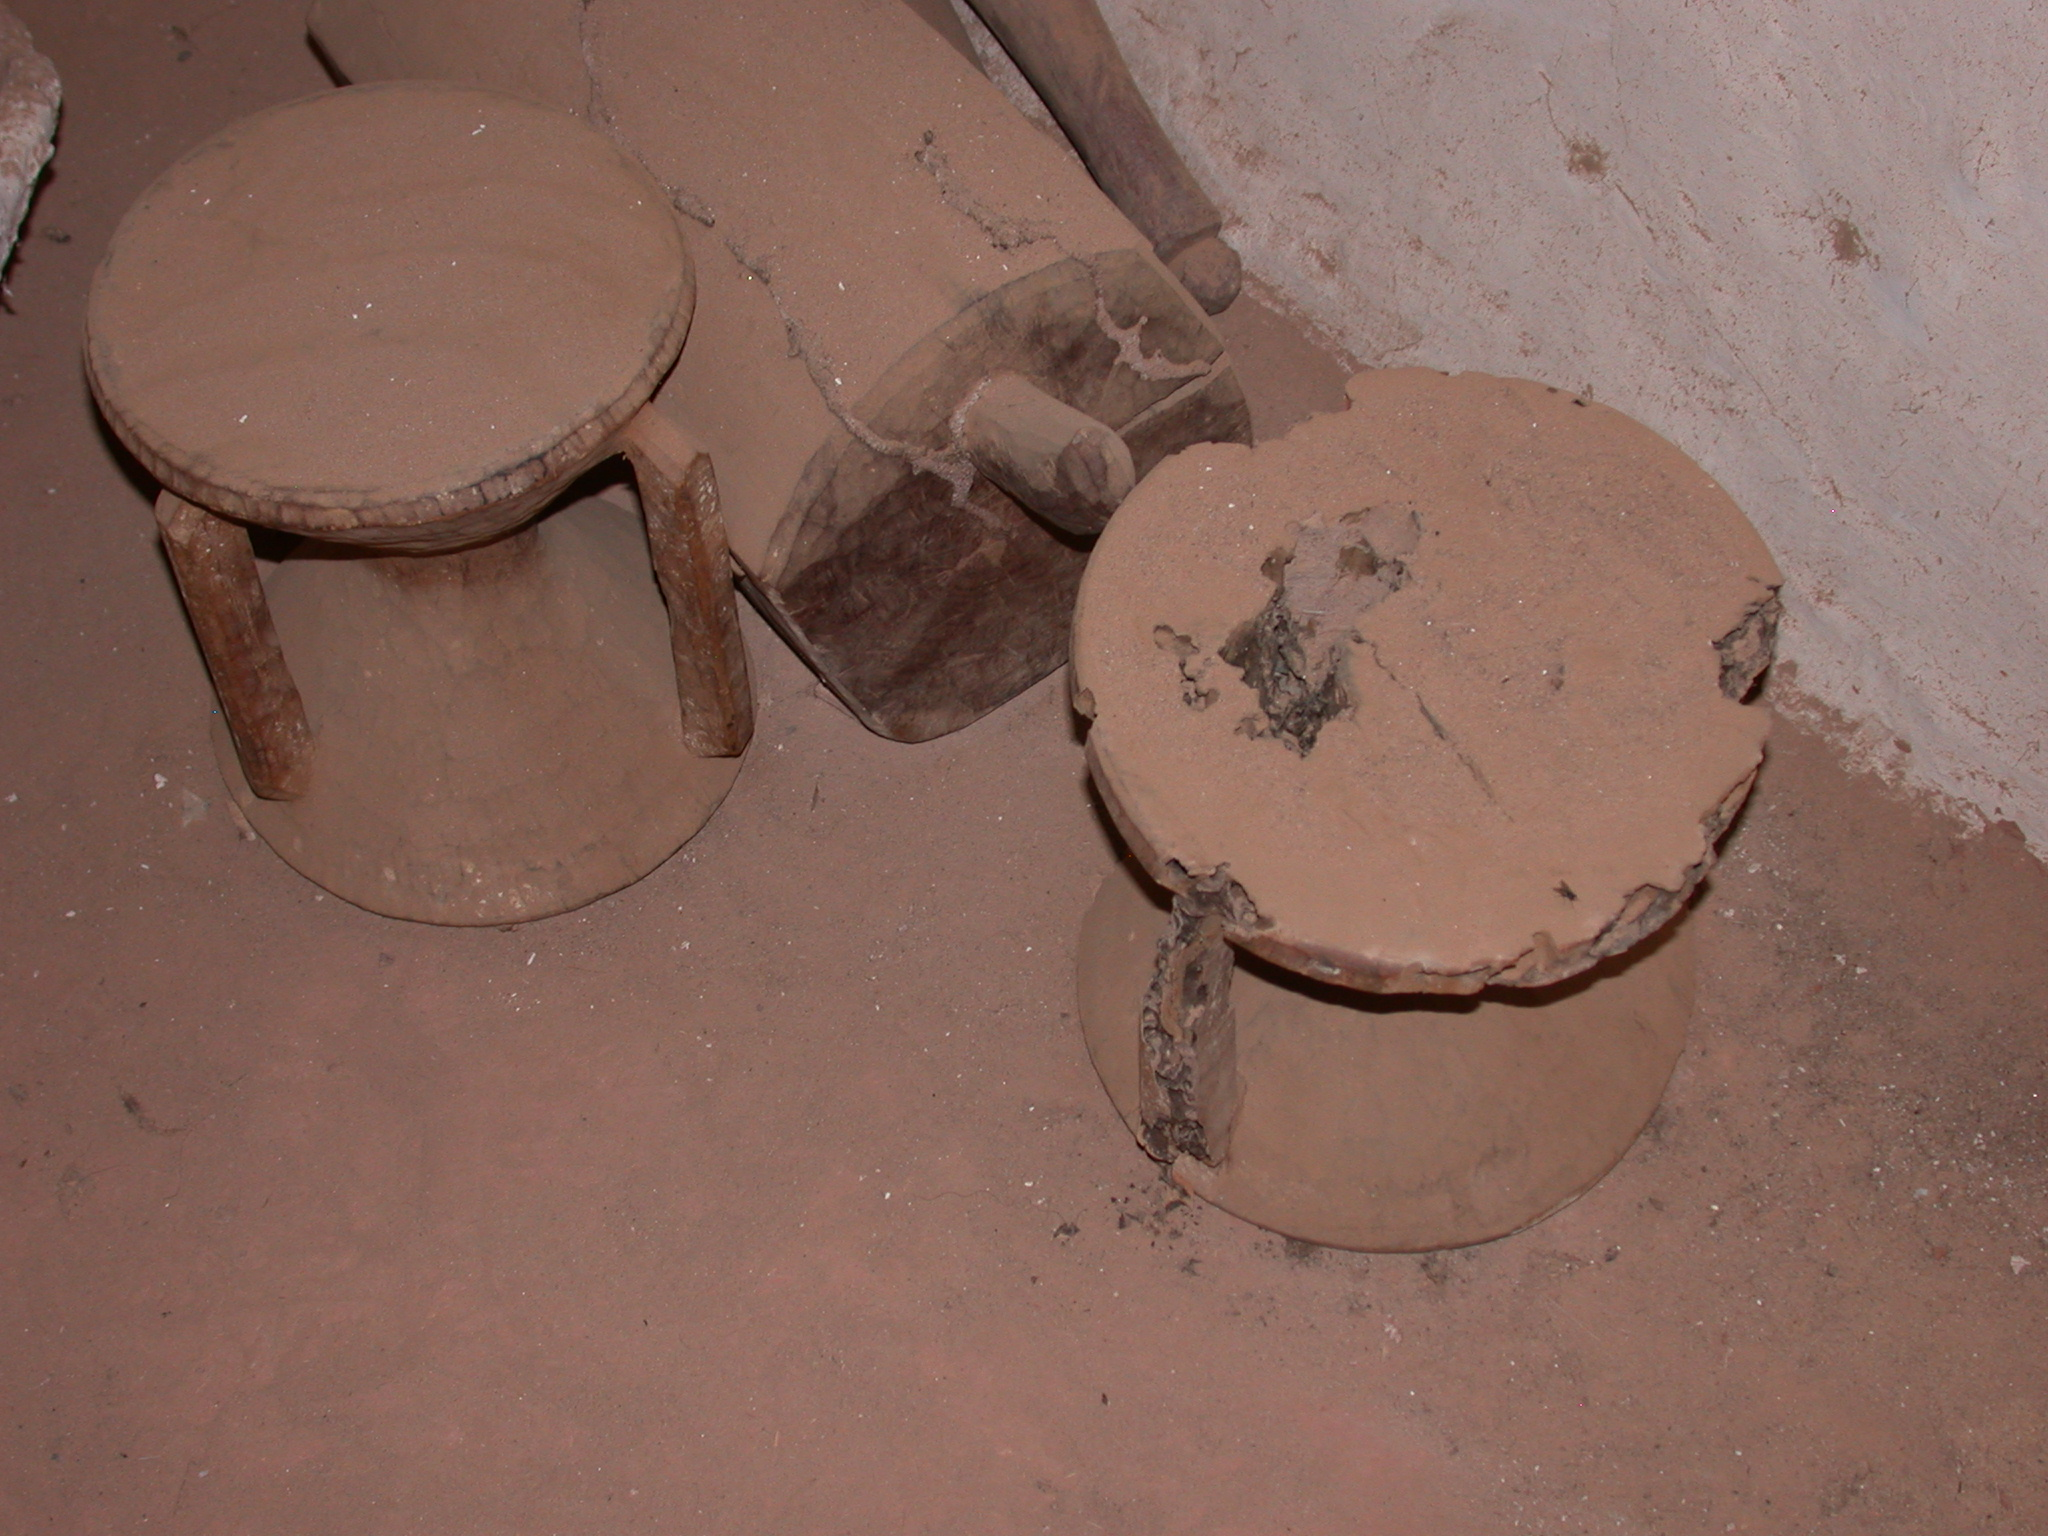 Traditional Stools at Museum in Ancient City of Oulata, Mauritania